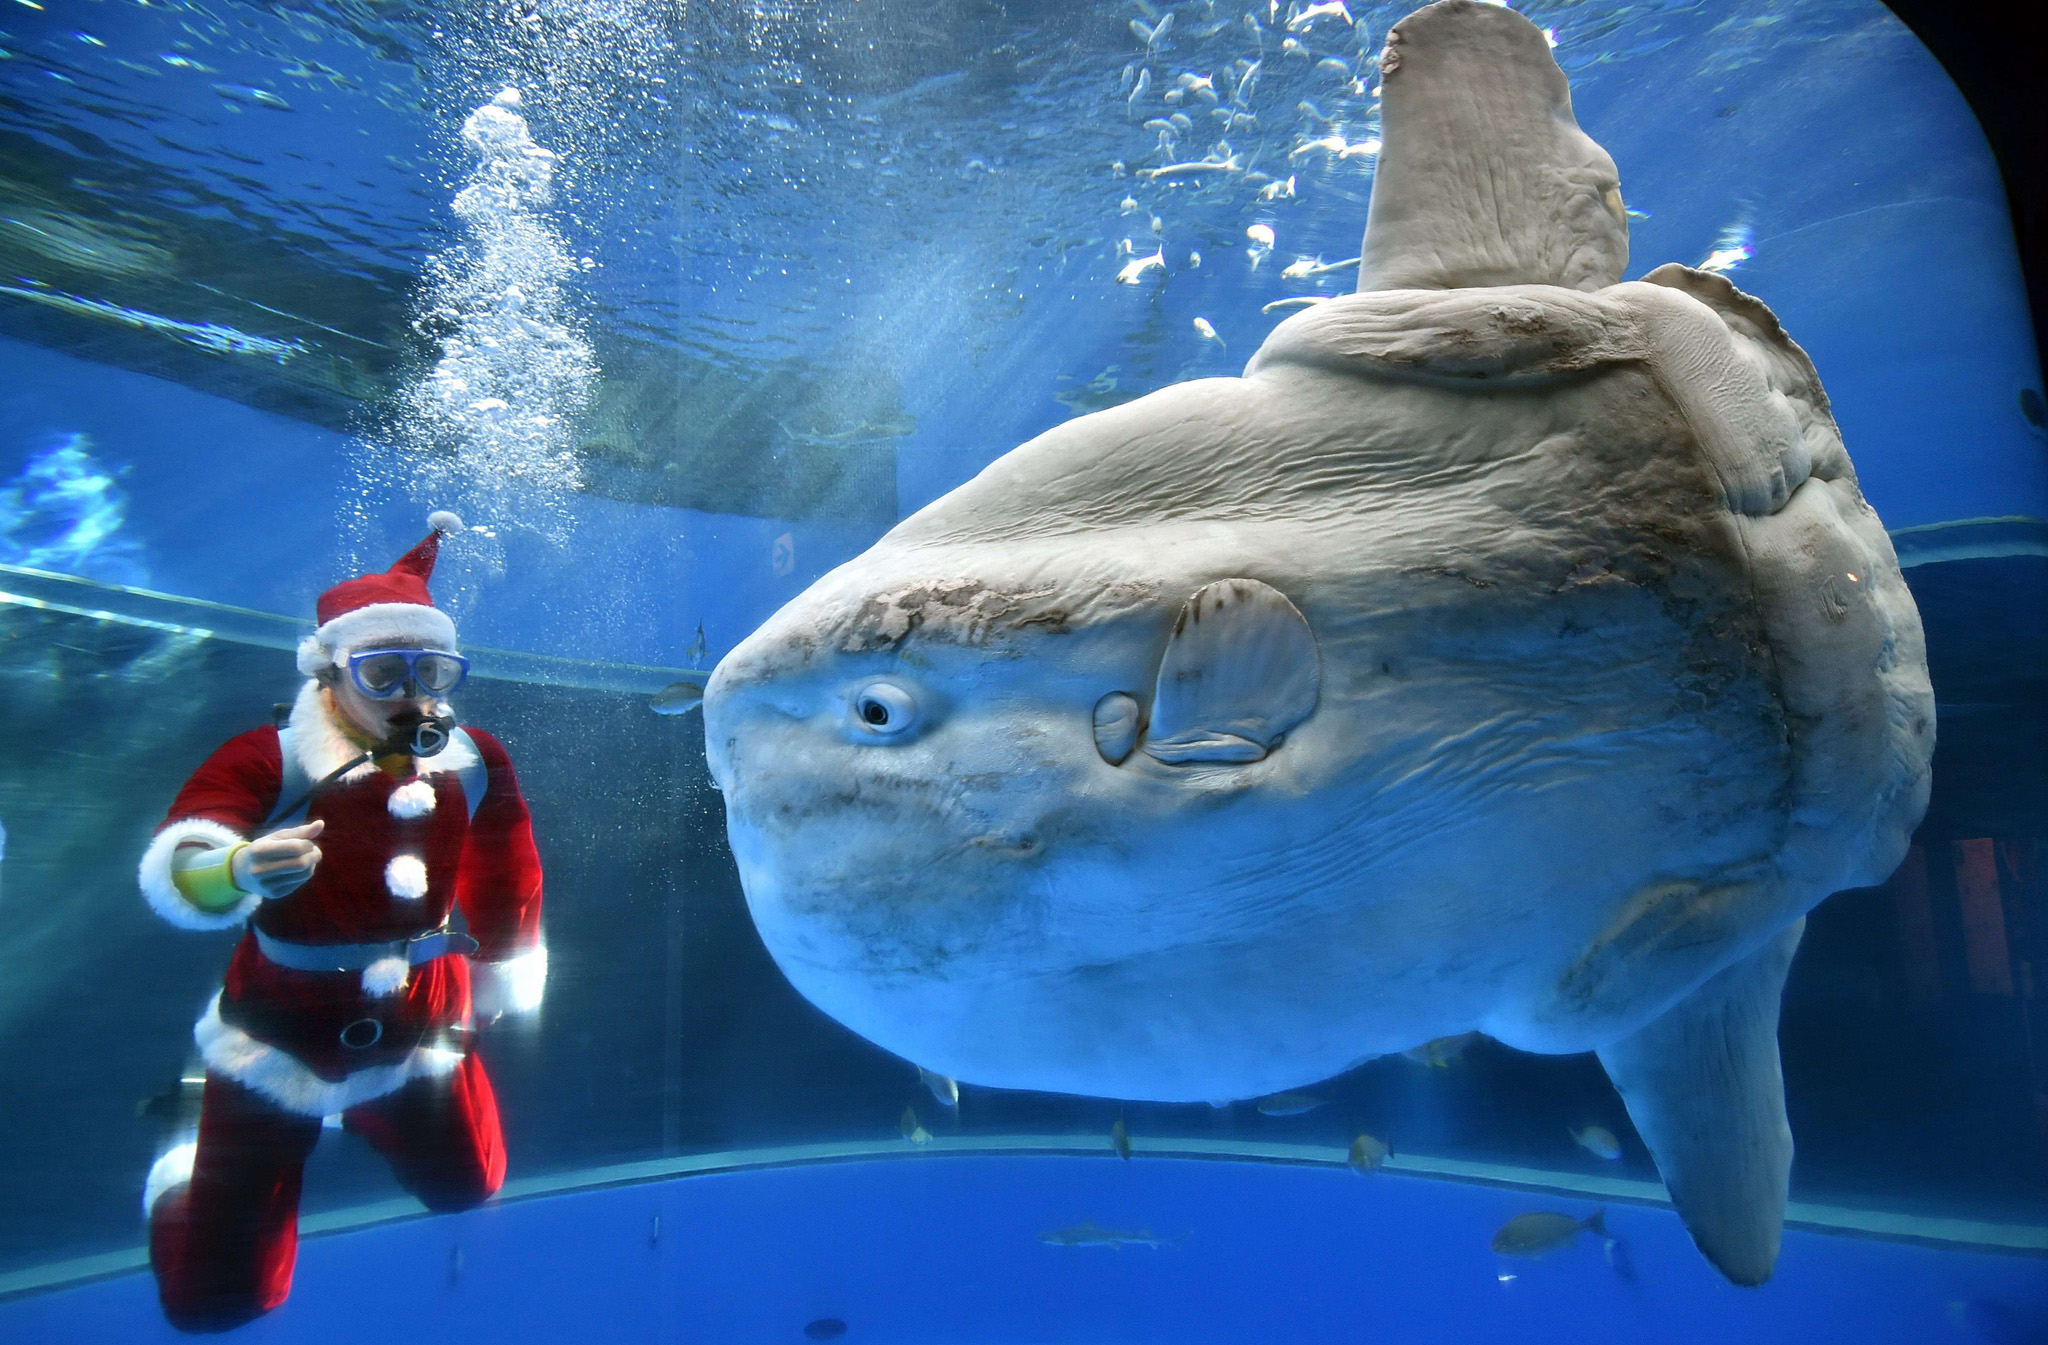 A diver wearing a Santa Claus costume feeds a sunfish to attract visitors at the Hakkeijima Sea Paradise aquarium in Yokohama, suburban Tokyo